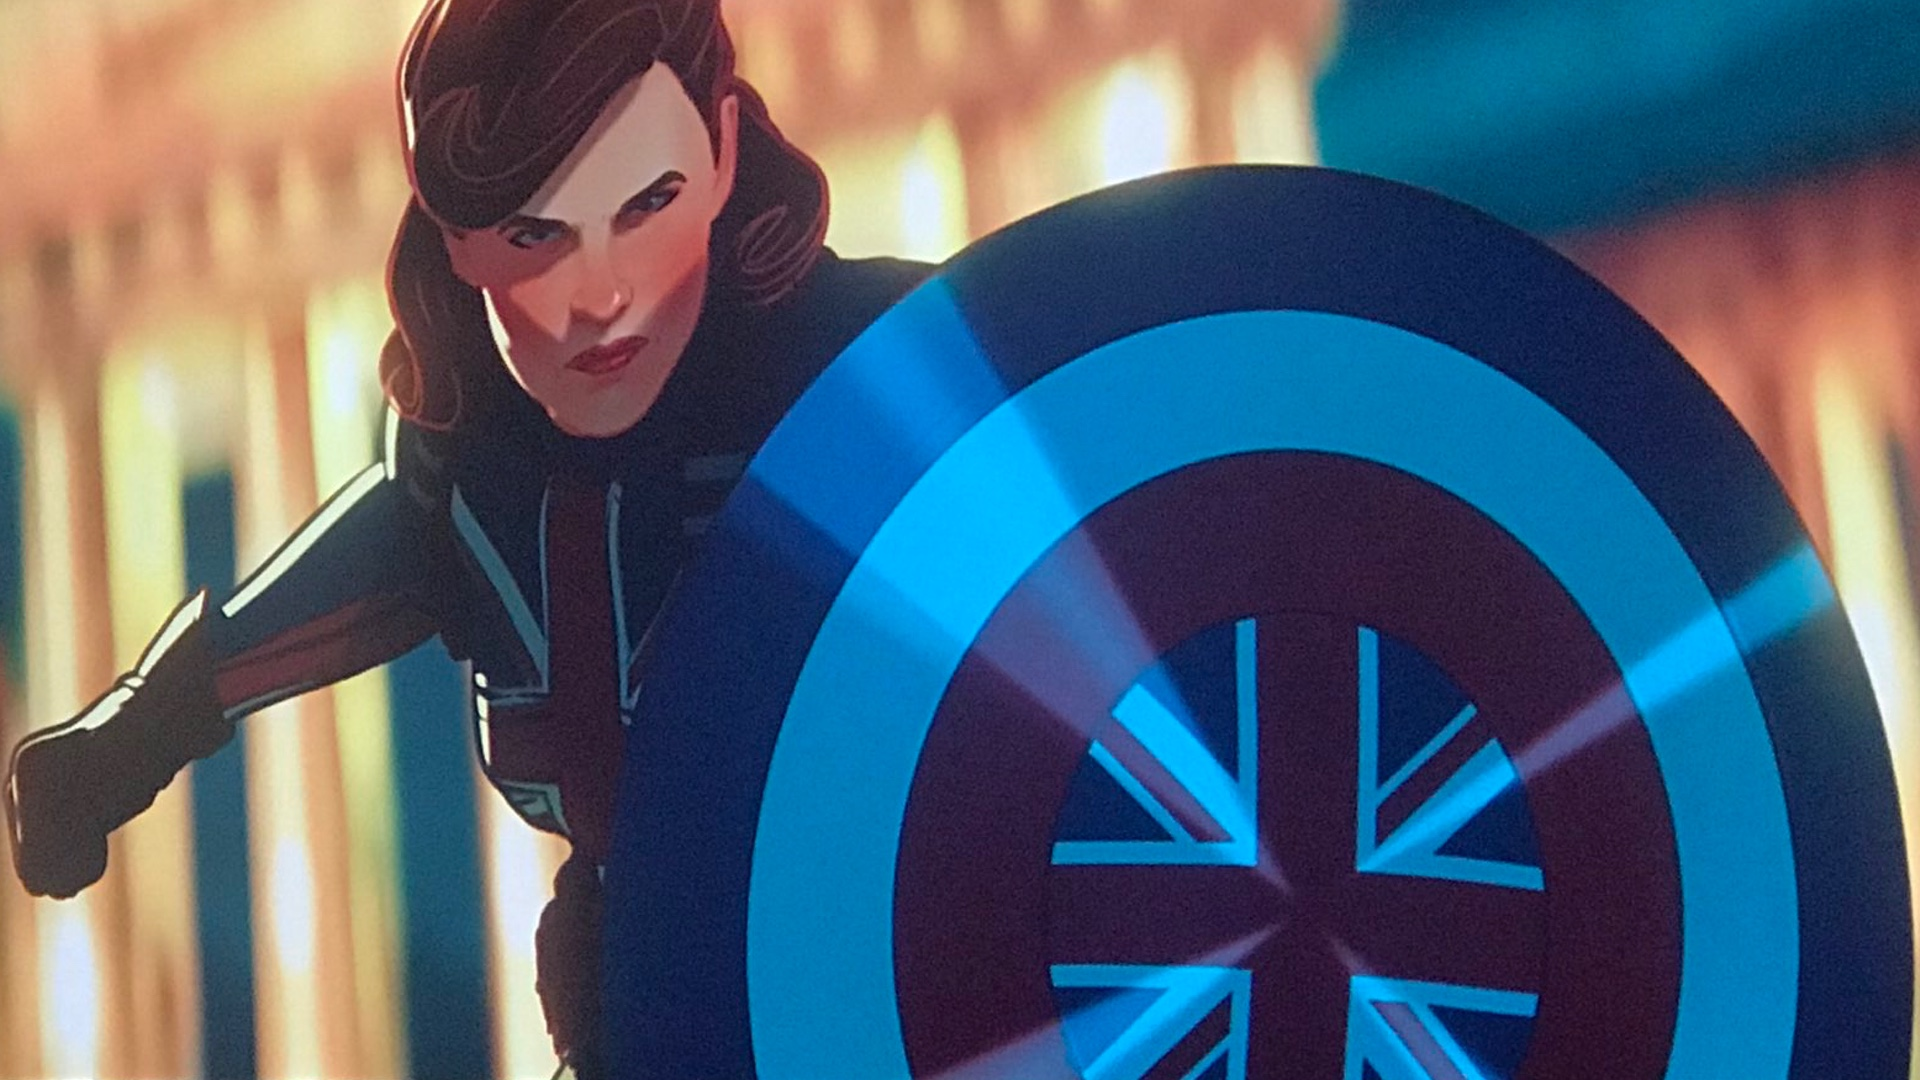 footage-from-marvels-animated-series-what-if-features-peggy-carter-as-captain-britain-marvel-zombies-and-more-social.jpg